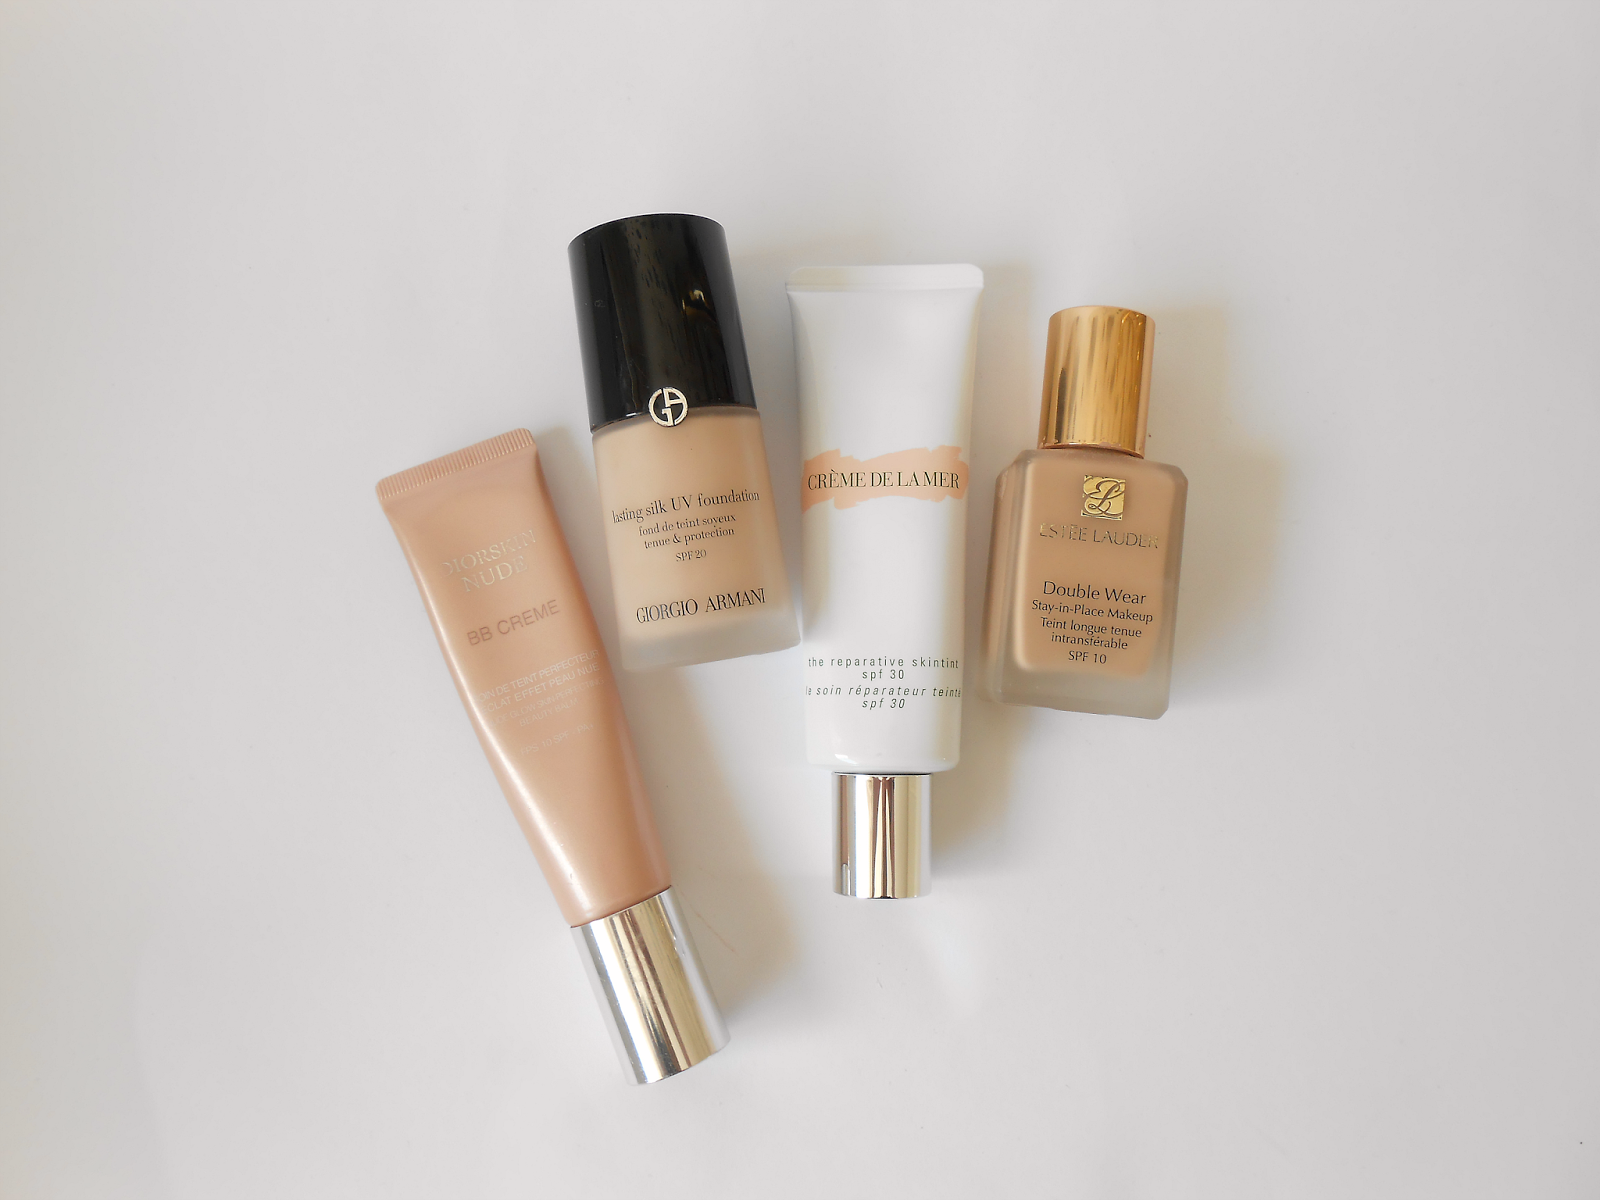 Foundation Favourites for Oily Skin